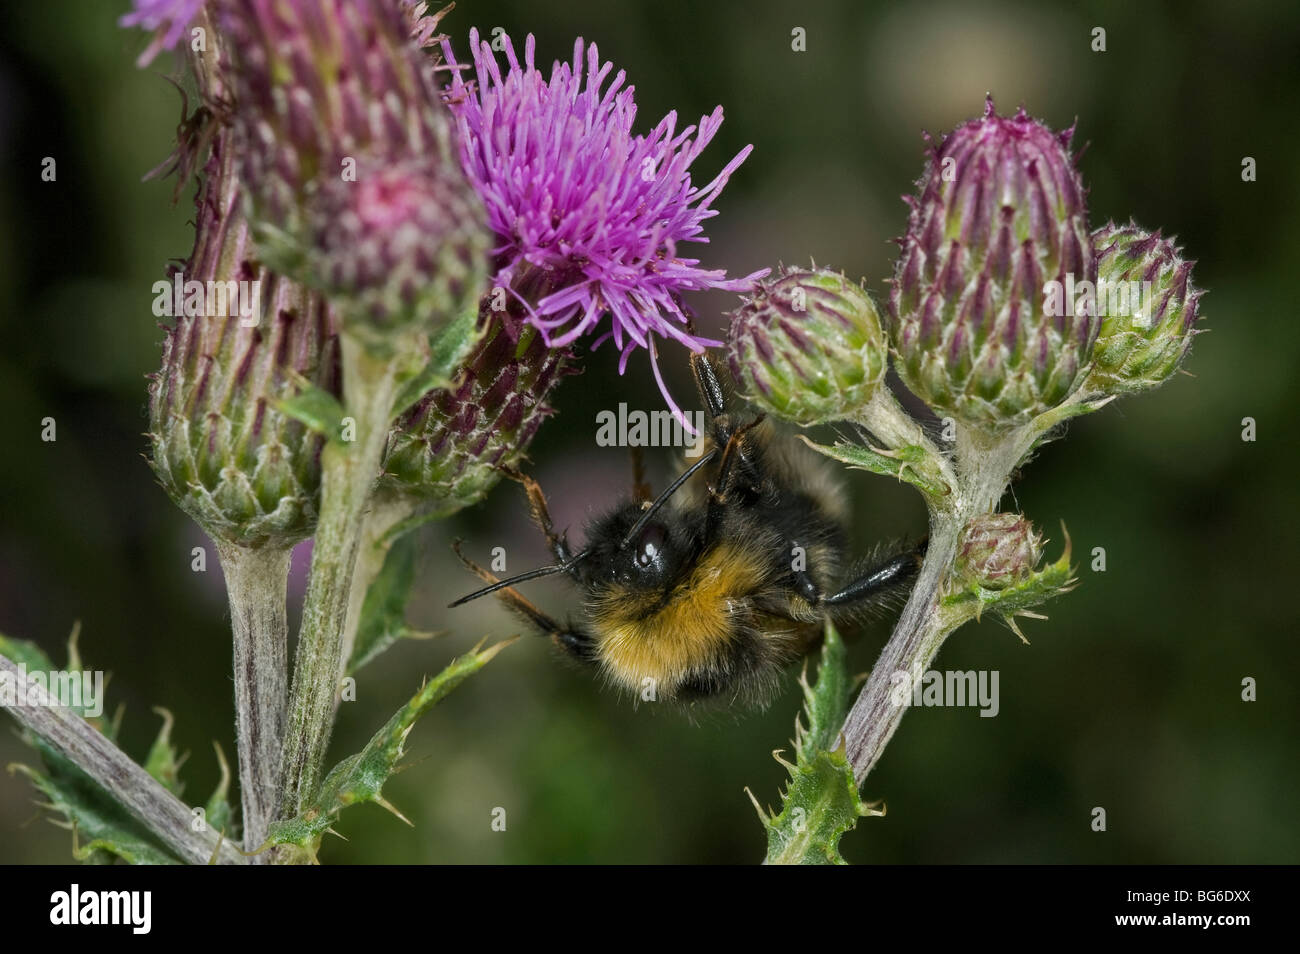 Italy, Piedmont, Oulx (To), a wild bee among the flowers, Bombus lucorum, Cirsium - Stock Image